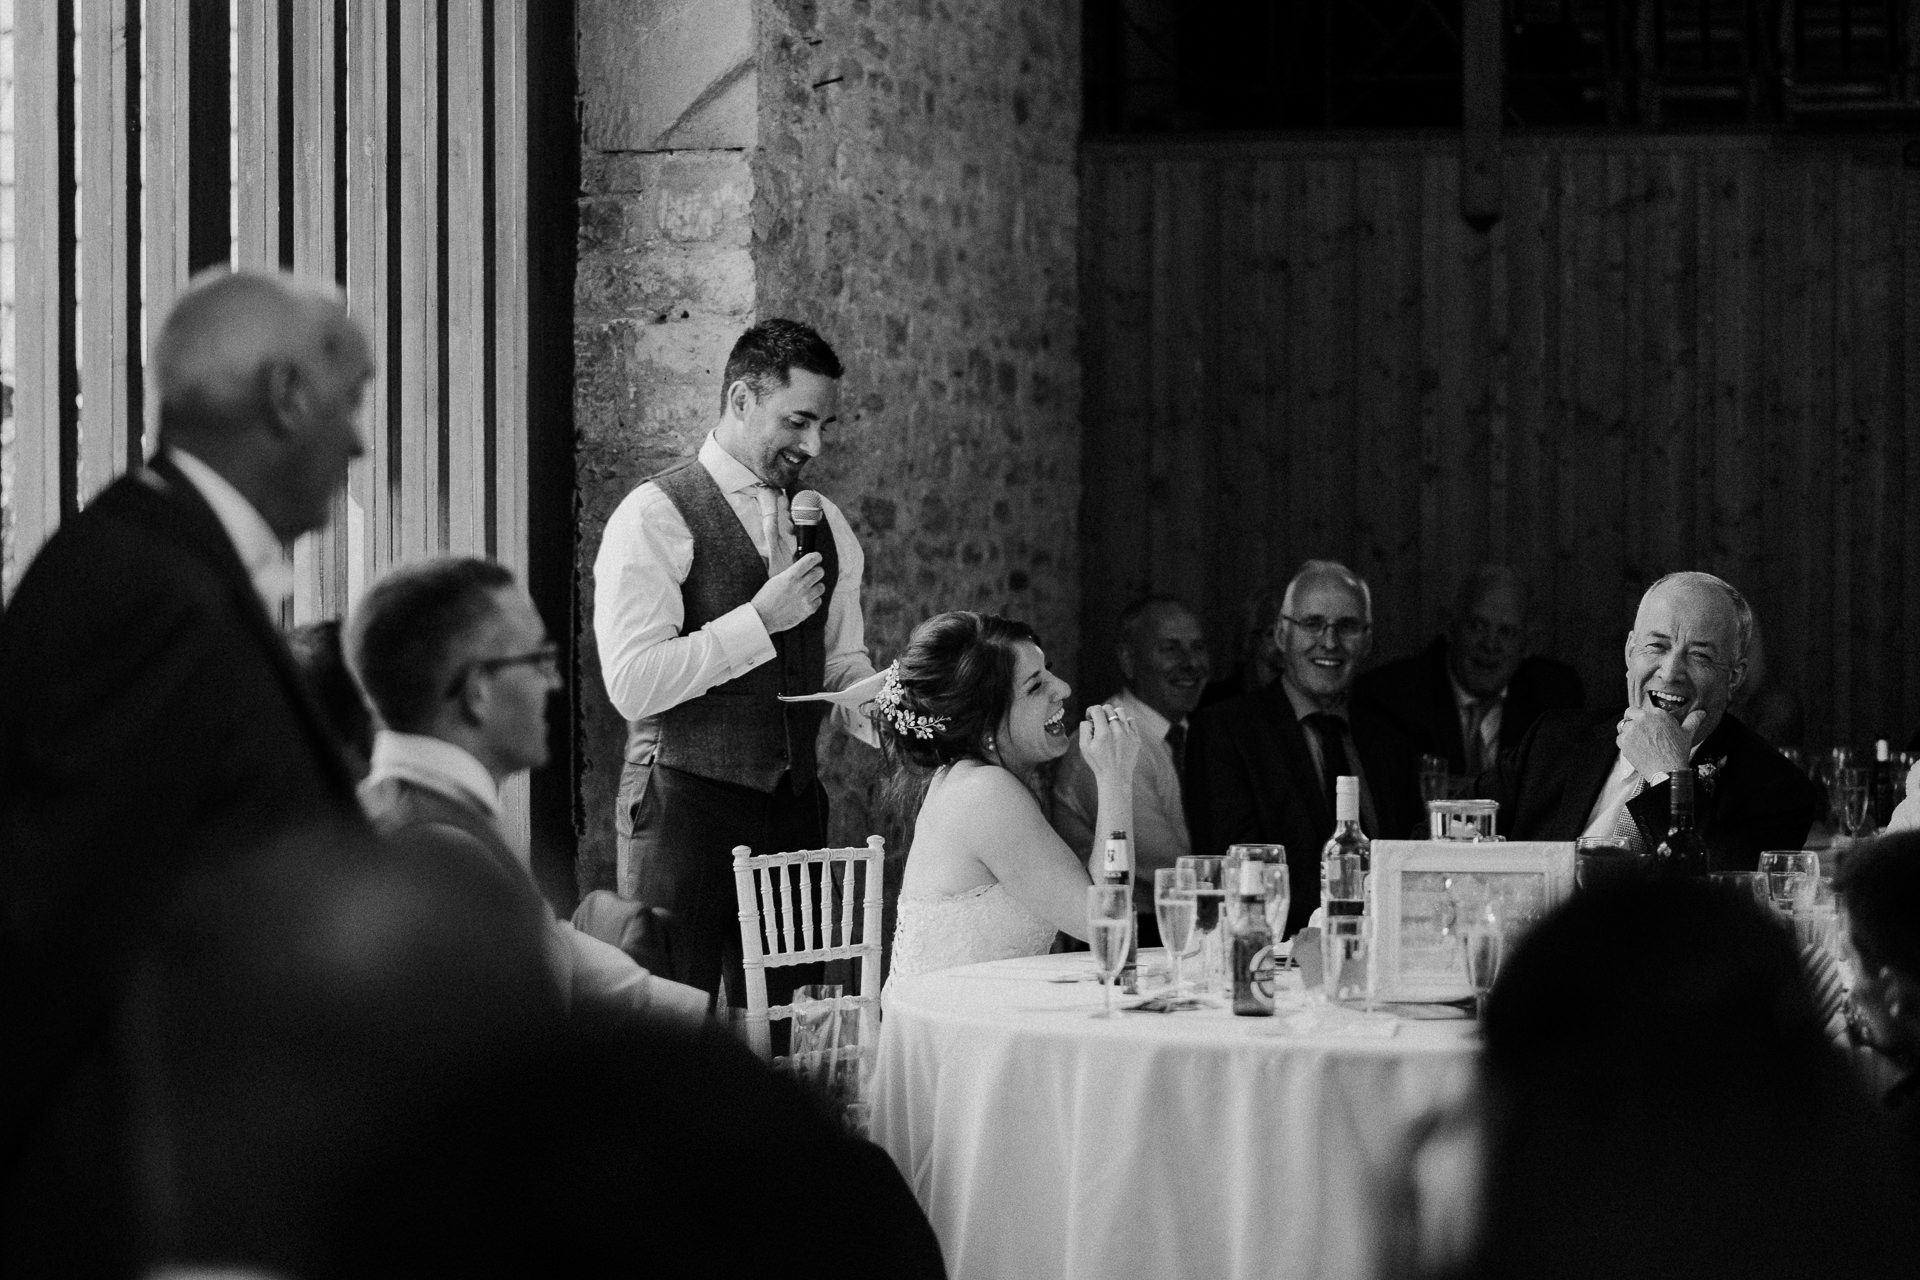 0054-DEVON-SOMERSET-WEDDING-PHOTOGRAPHER-0259-BEST-OF-2019-LOUISE-MAY-DEVON-SOMERSET-WEDDING-PHOTOGRAPHY-20190529-18-19-07-LM1_4890